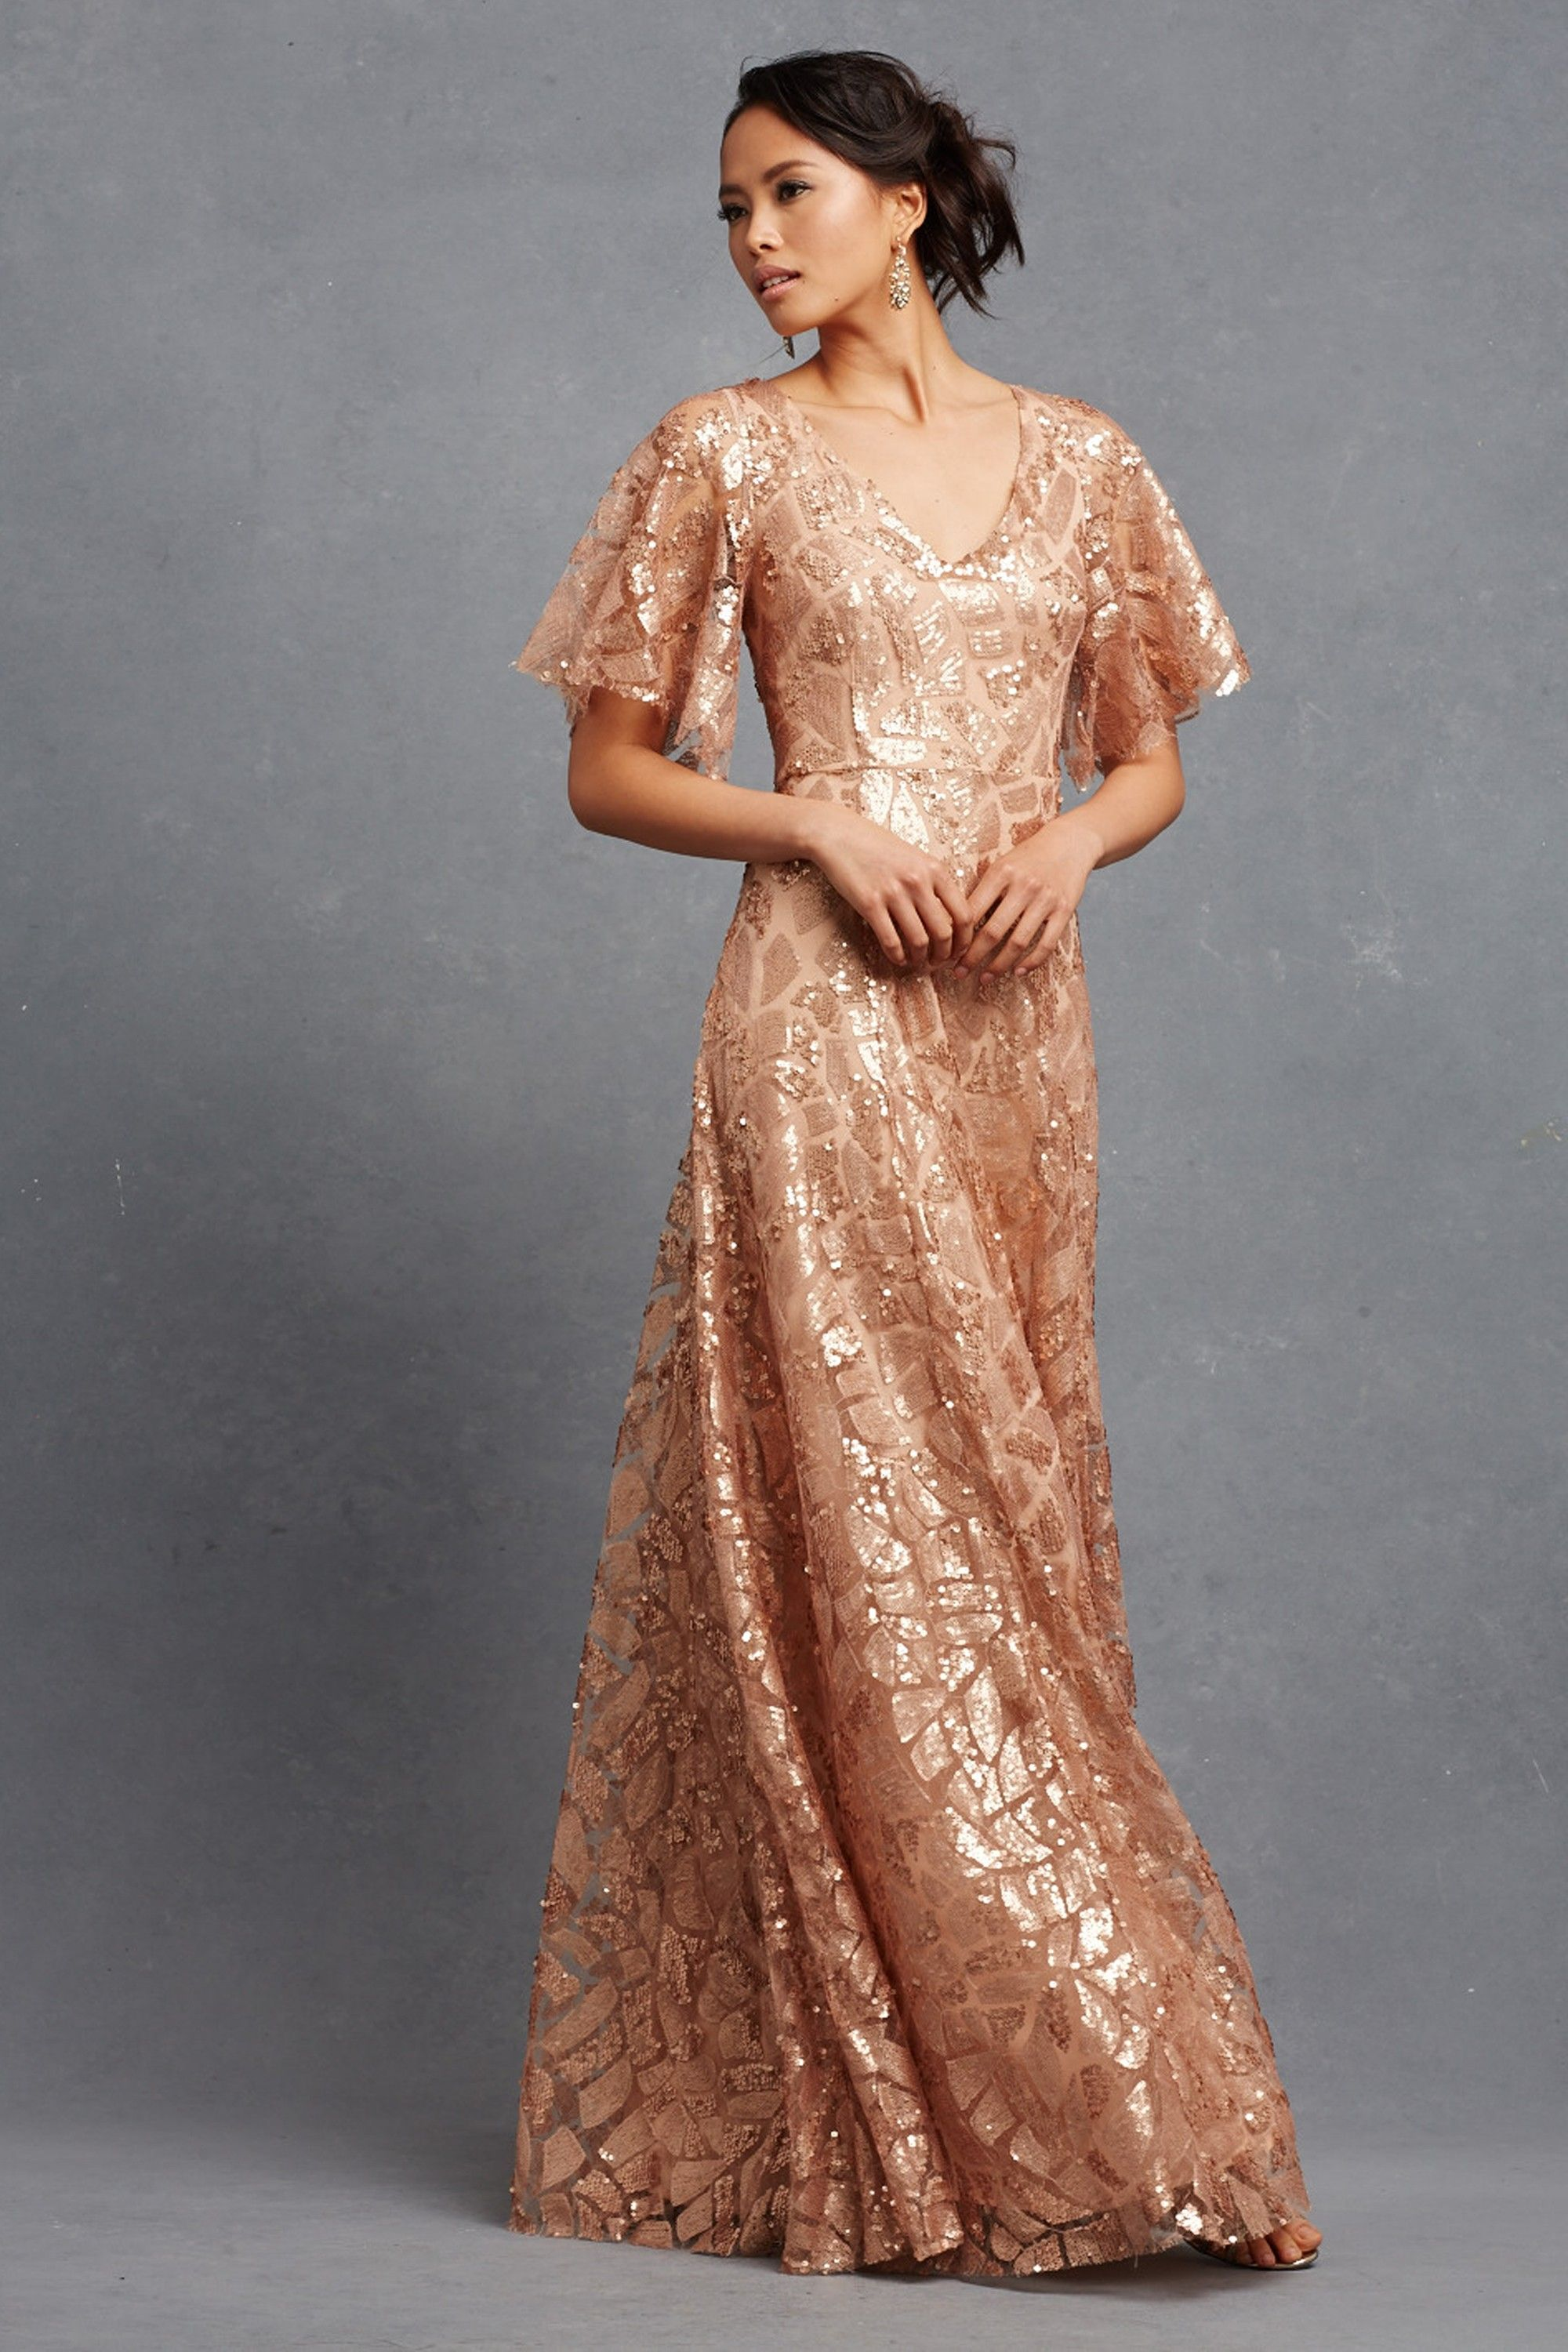 Long dresses for wedding reception  Pin by Anna Maria Clark on Bridesmaid Dresses  Pinterest